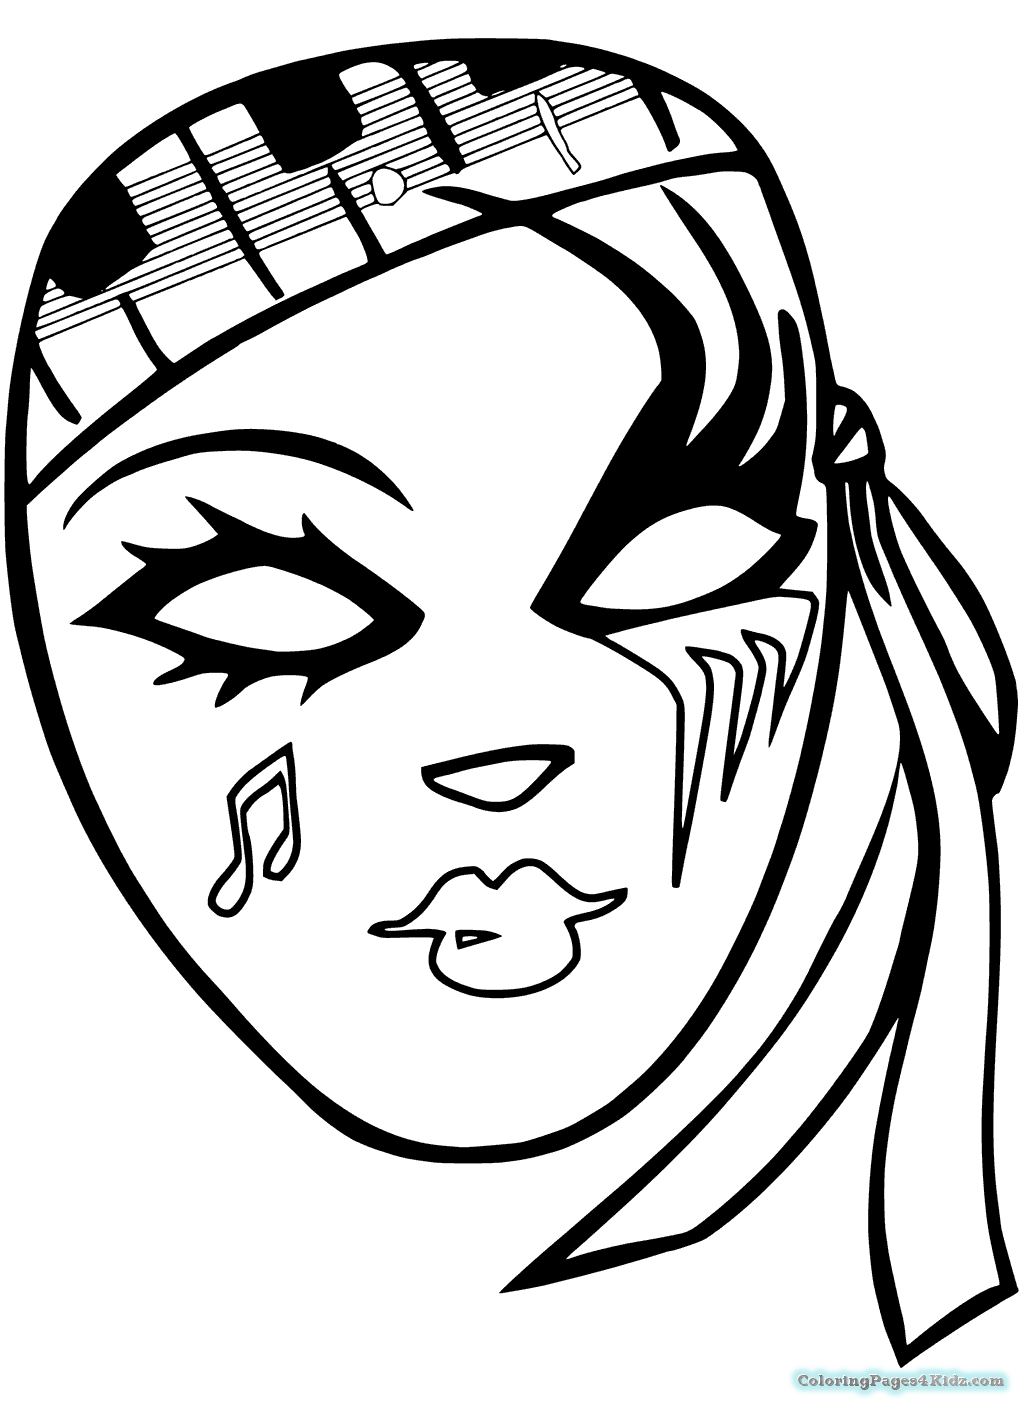 mardi gras mask coloring pages printable mardi gras coloring pages for kids cool2bkids coloring mardi pages gras mask